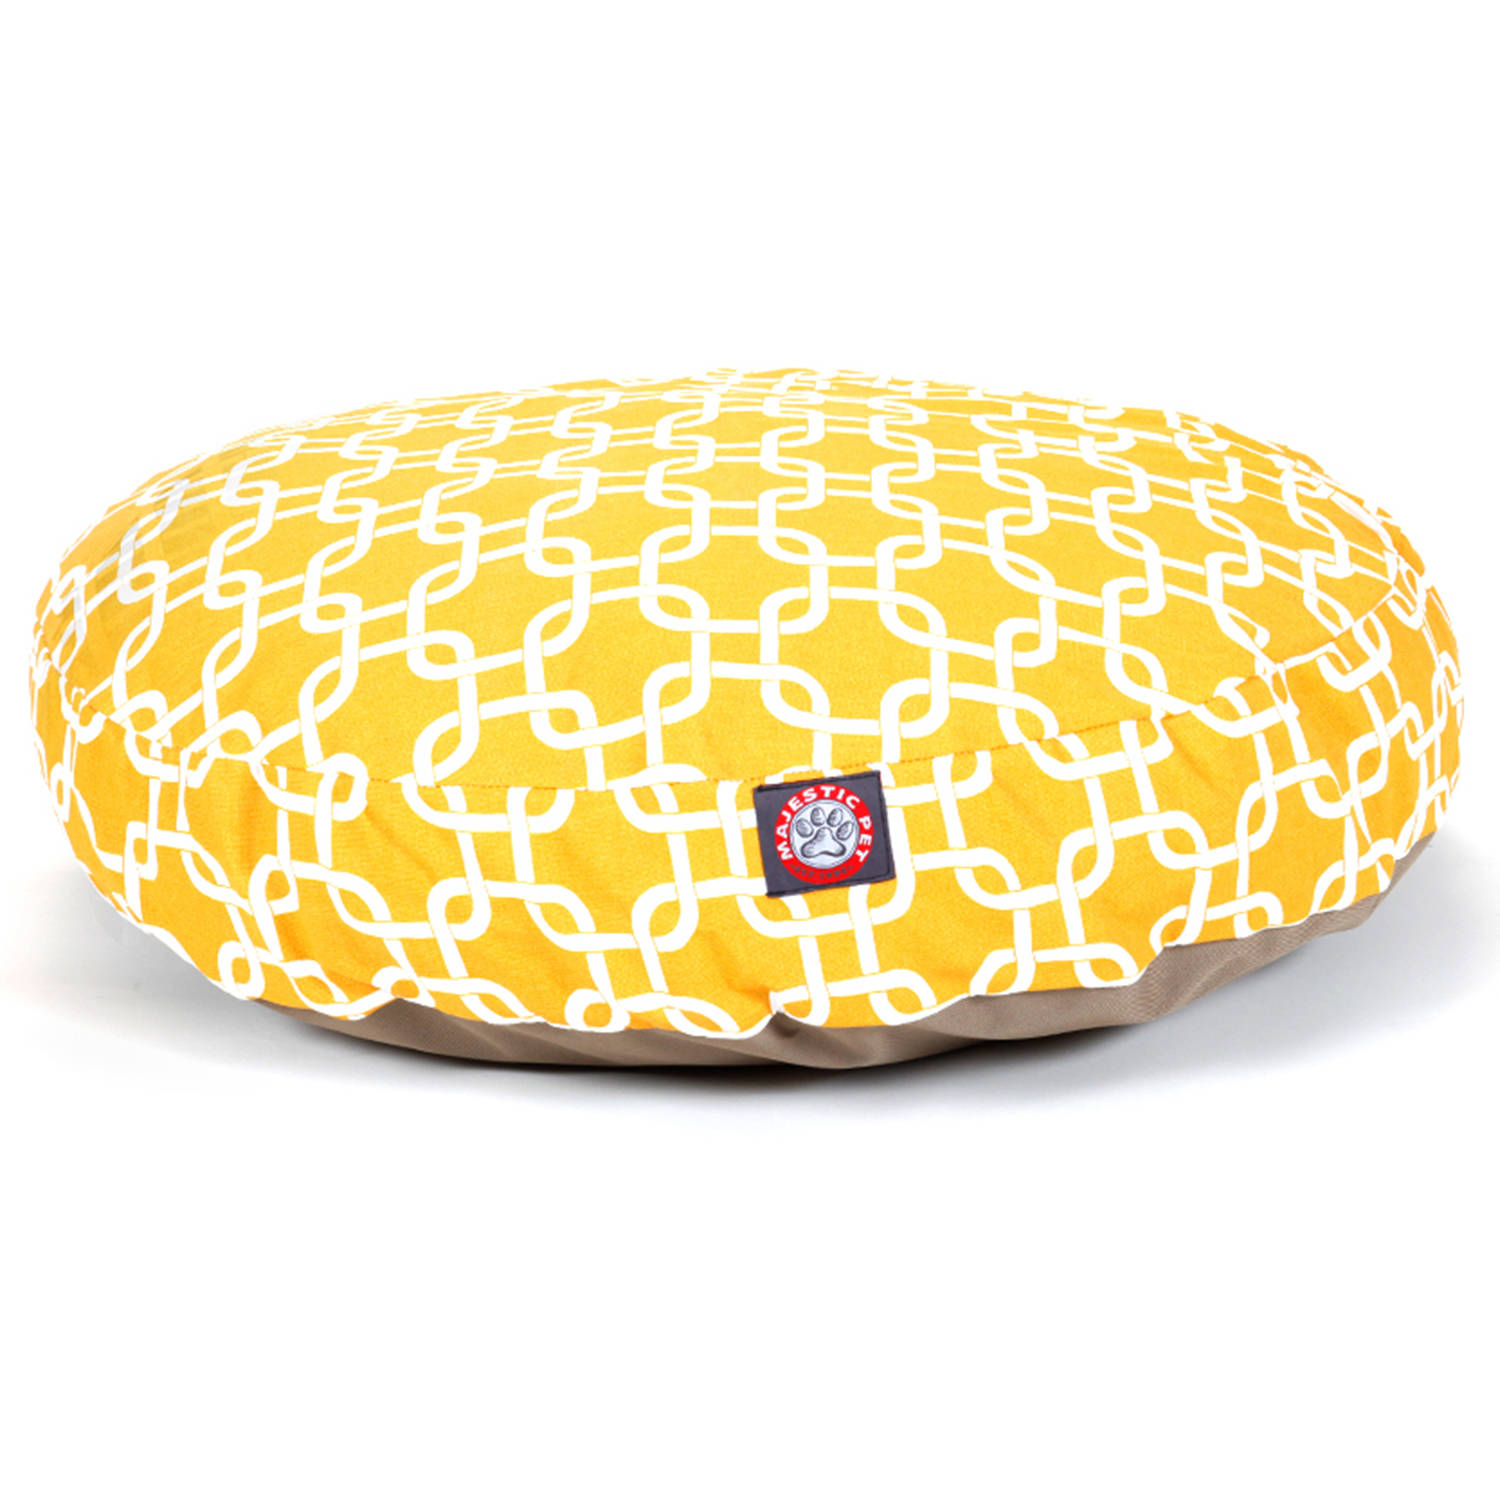 Majestic Pet Links Small Round Outdoor Indoor Pet Bed Removable Cover